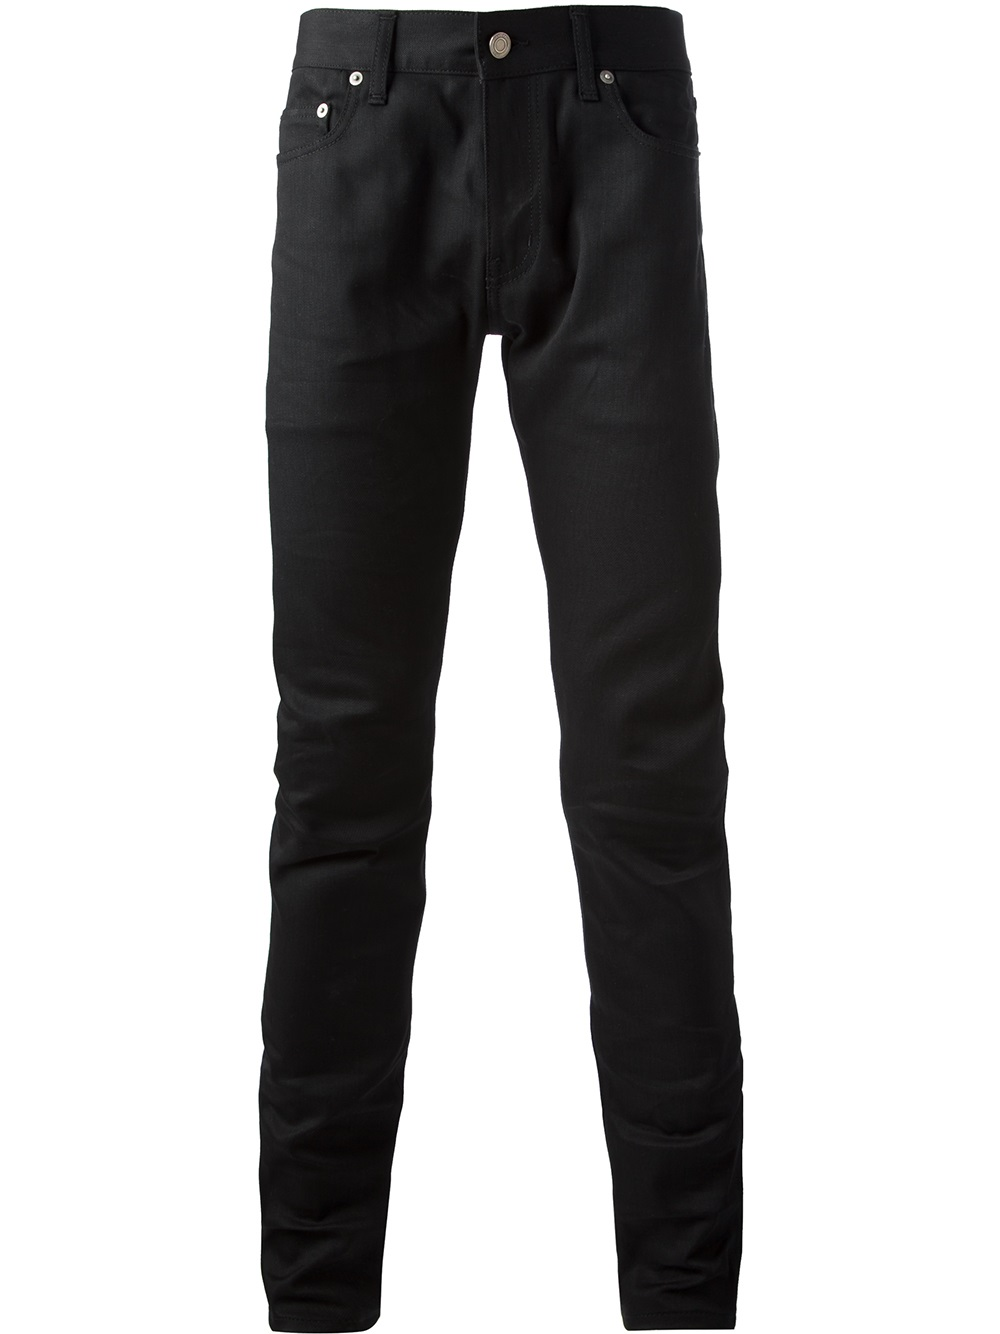 lyst saint laurent skinny jeans in black for men. Black Bedroom Furniture Sets. Home Design Ideas